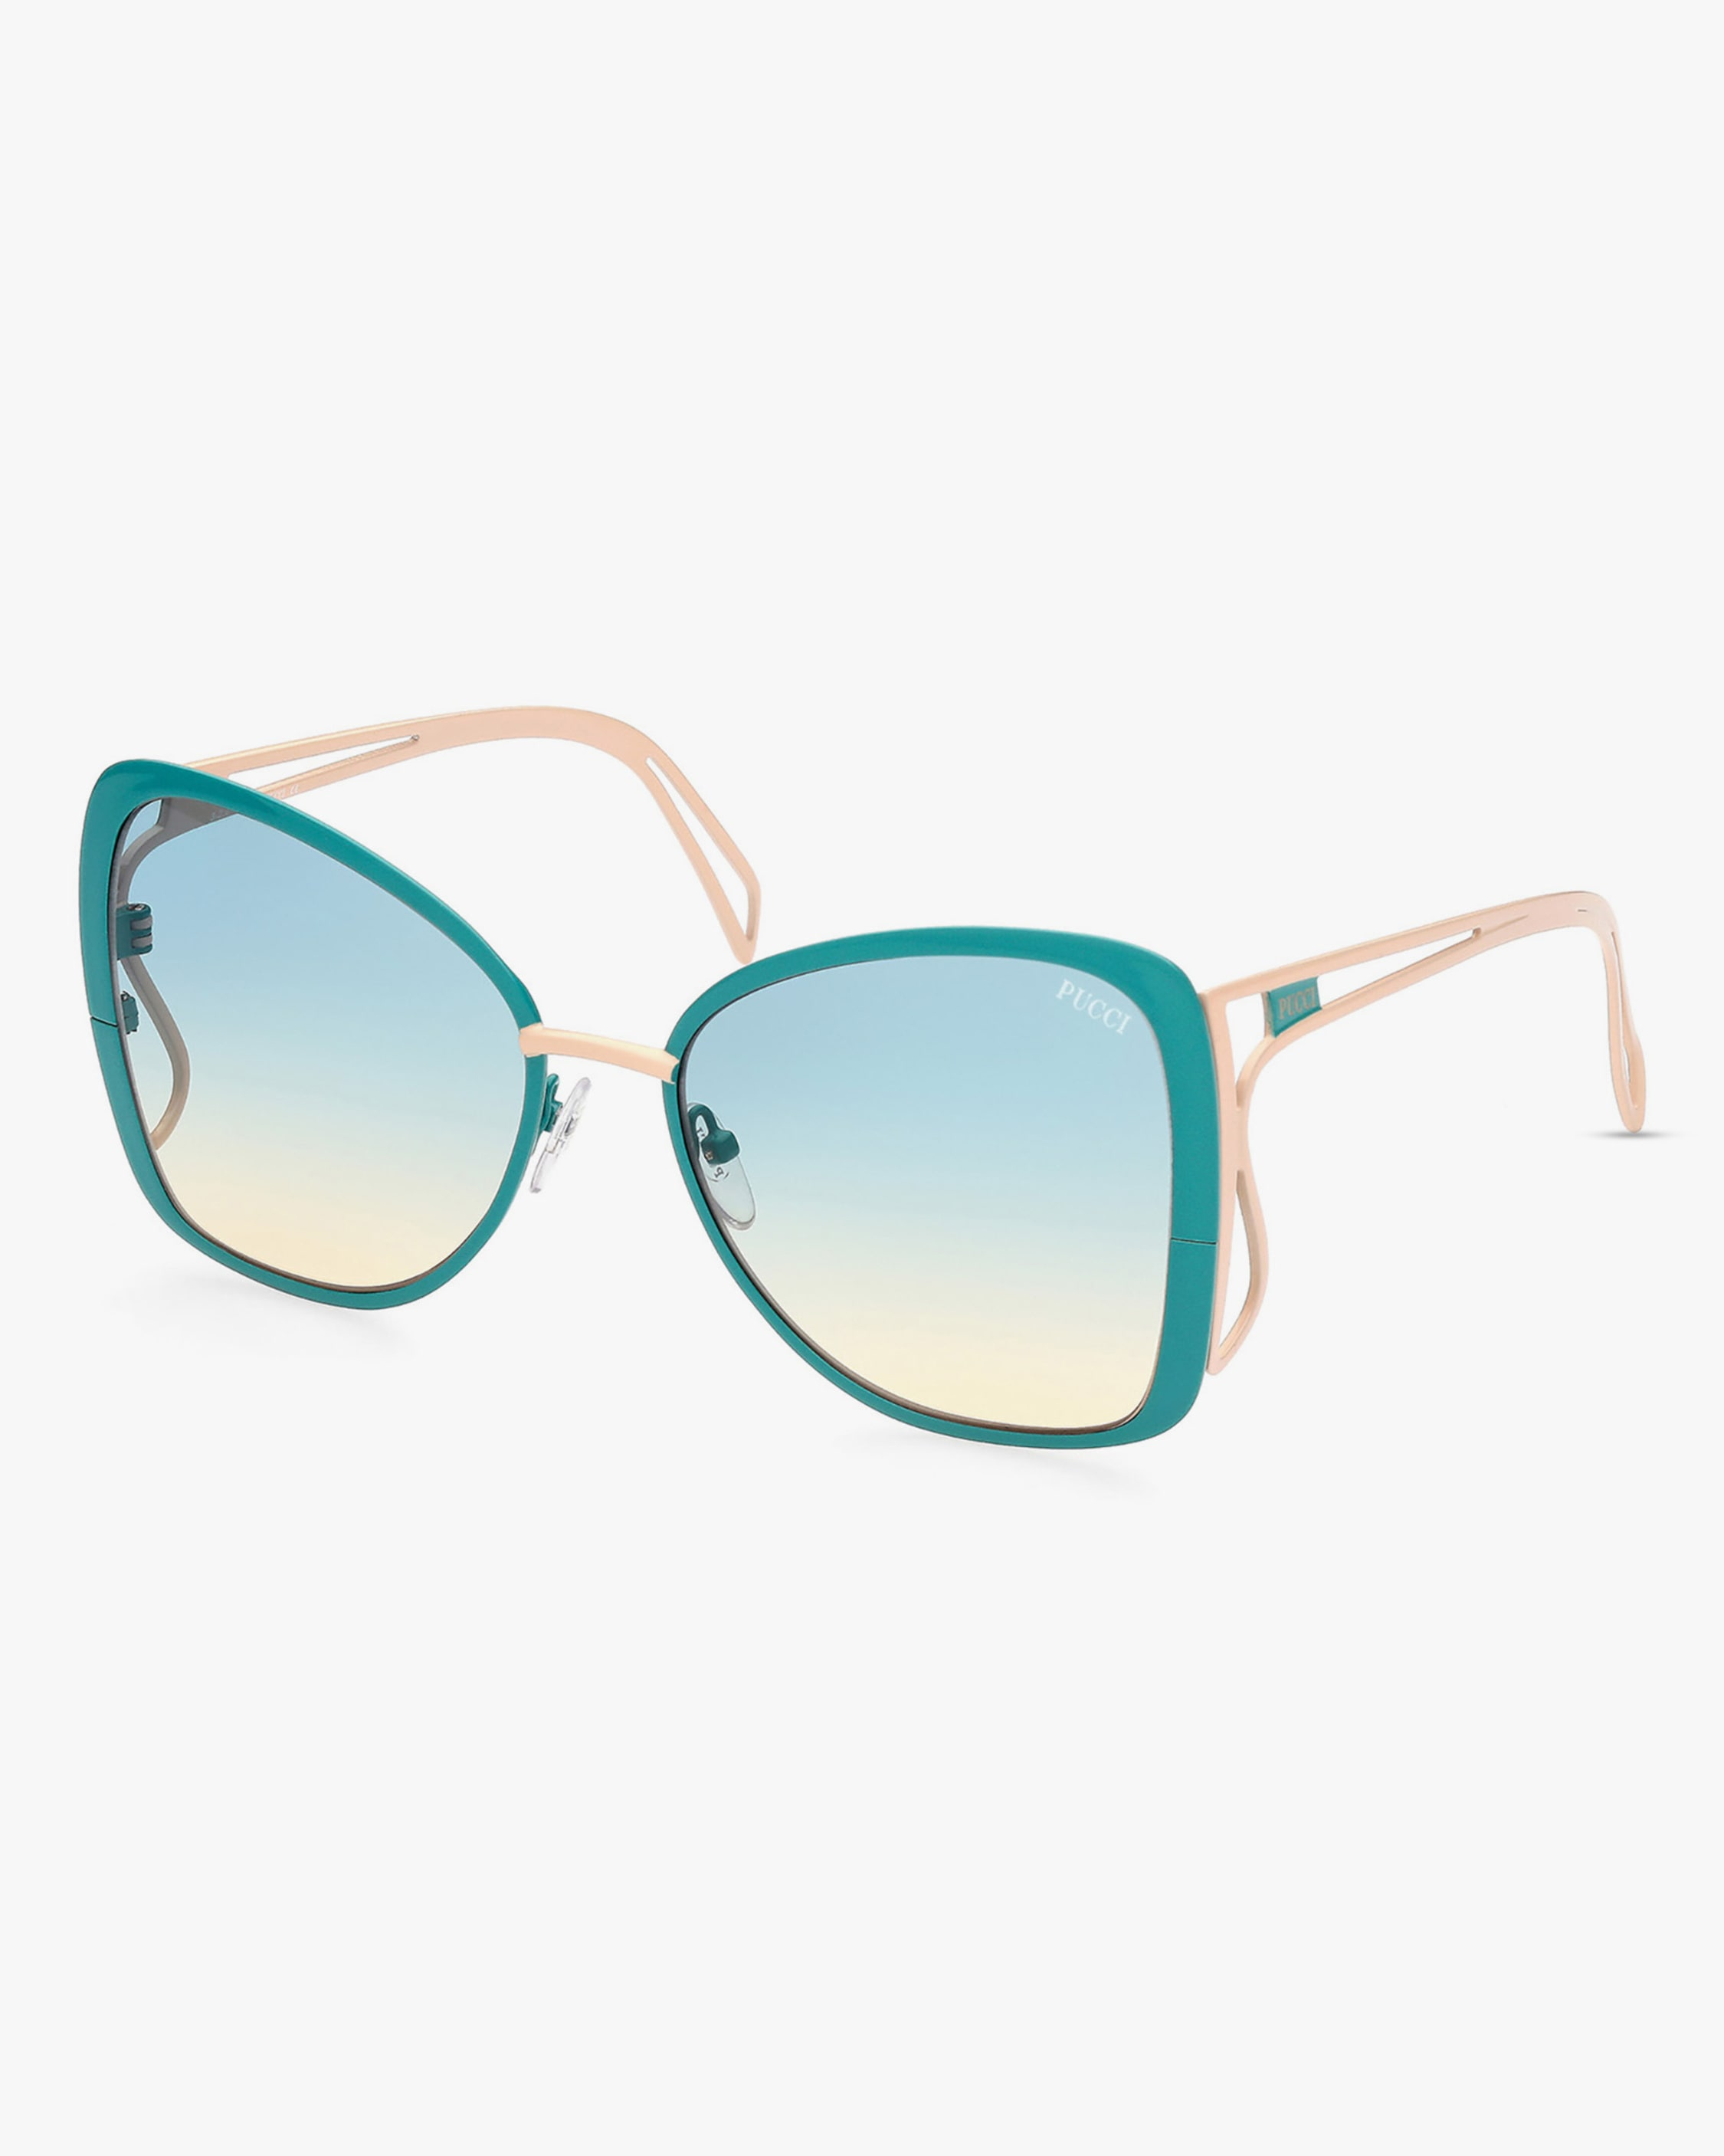 Emilio Pucci Turquoise Butterfly Metal Sunglasses 2